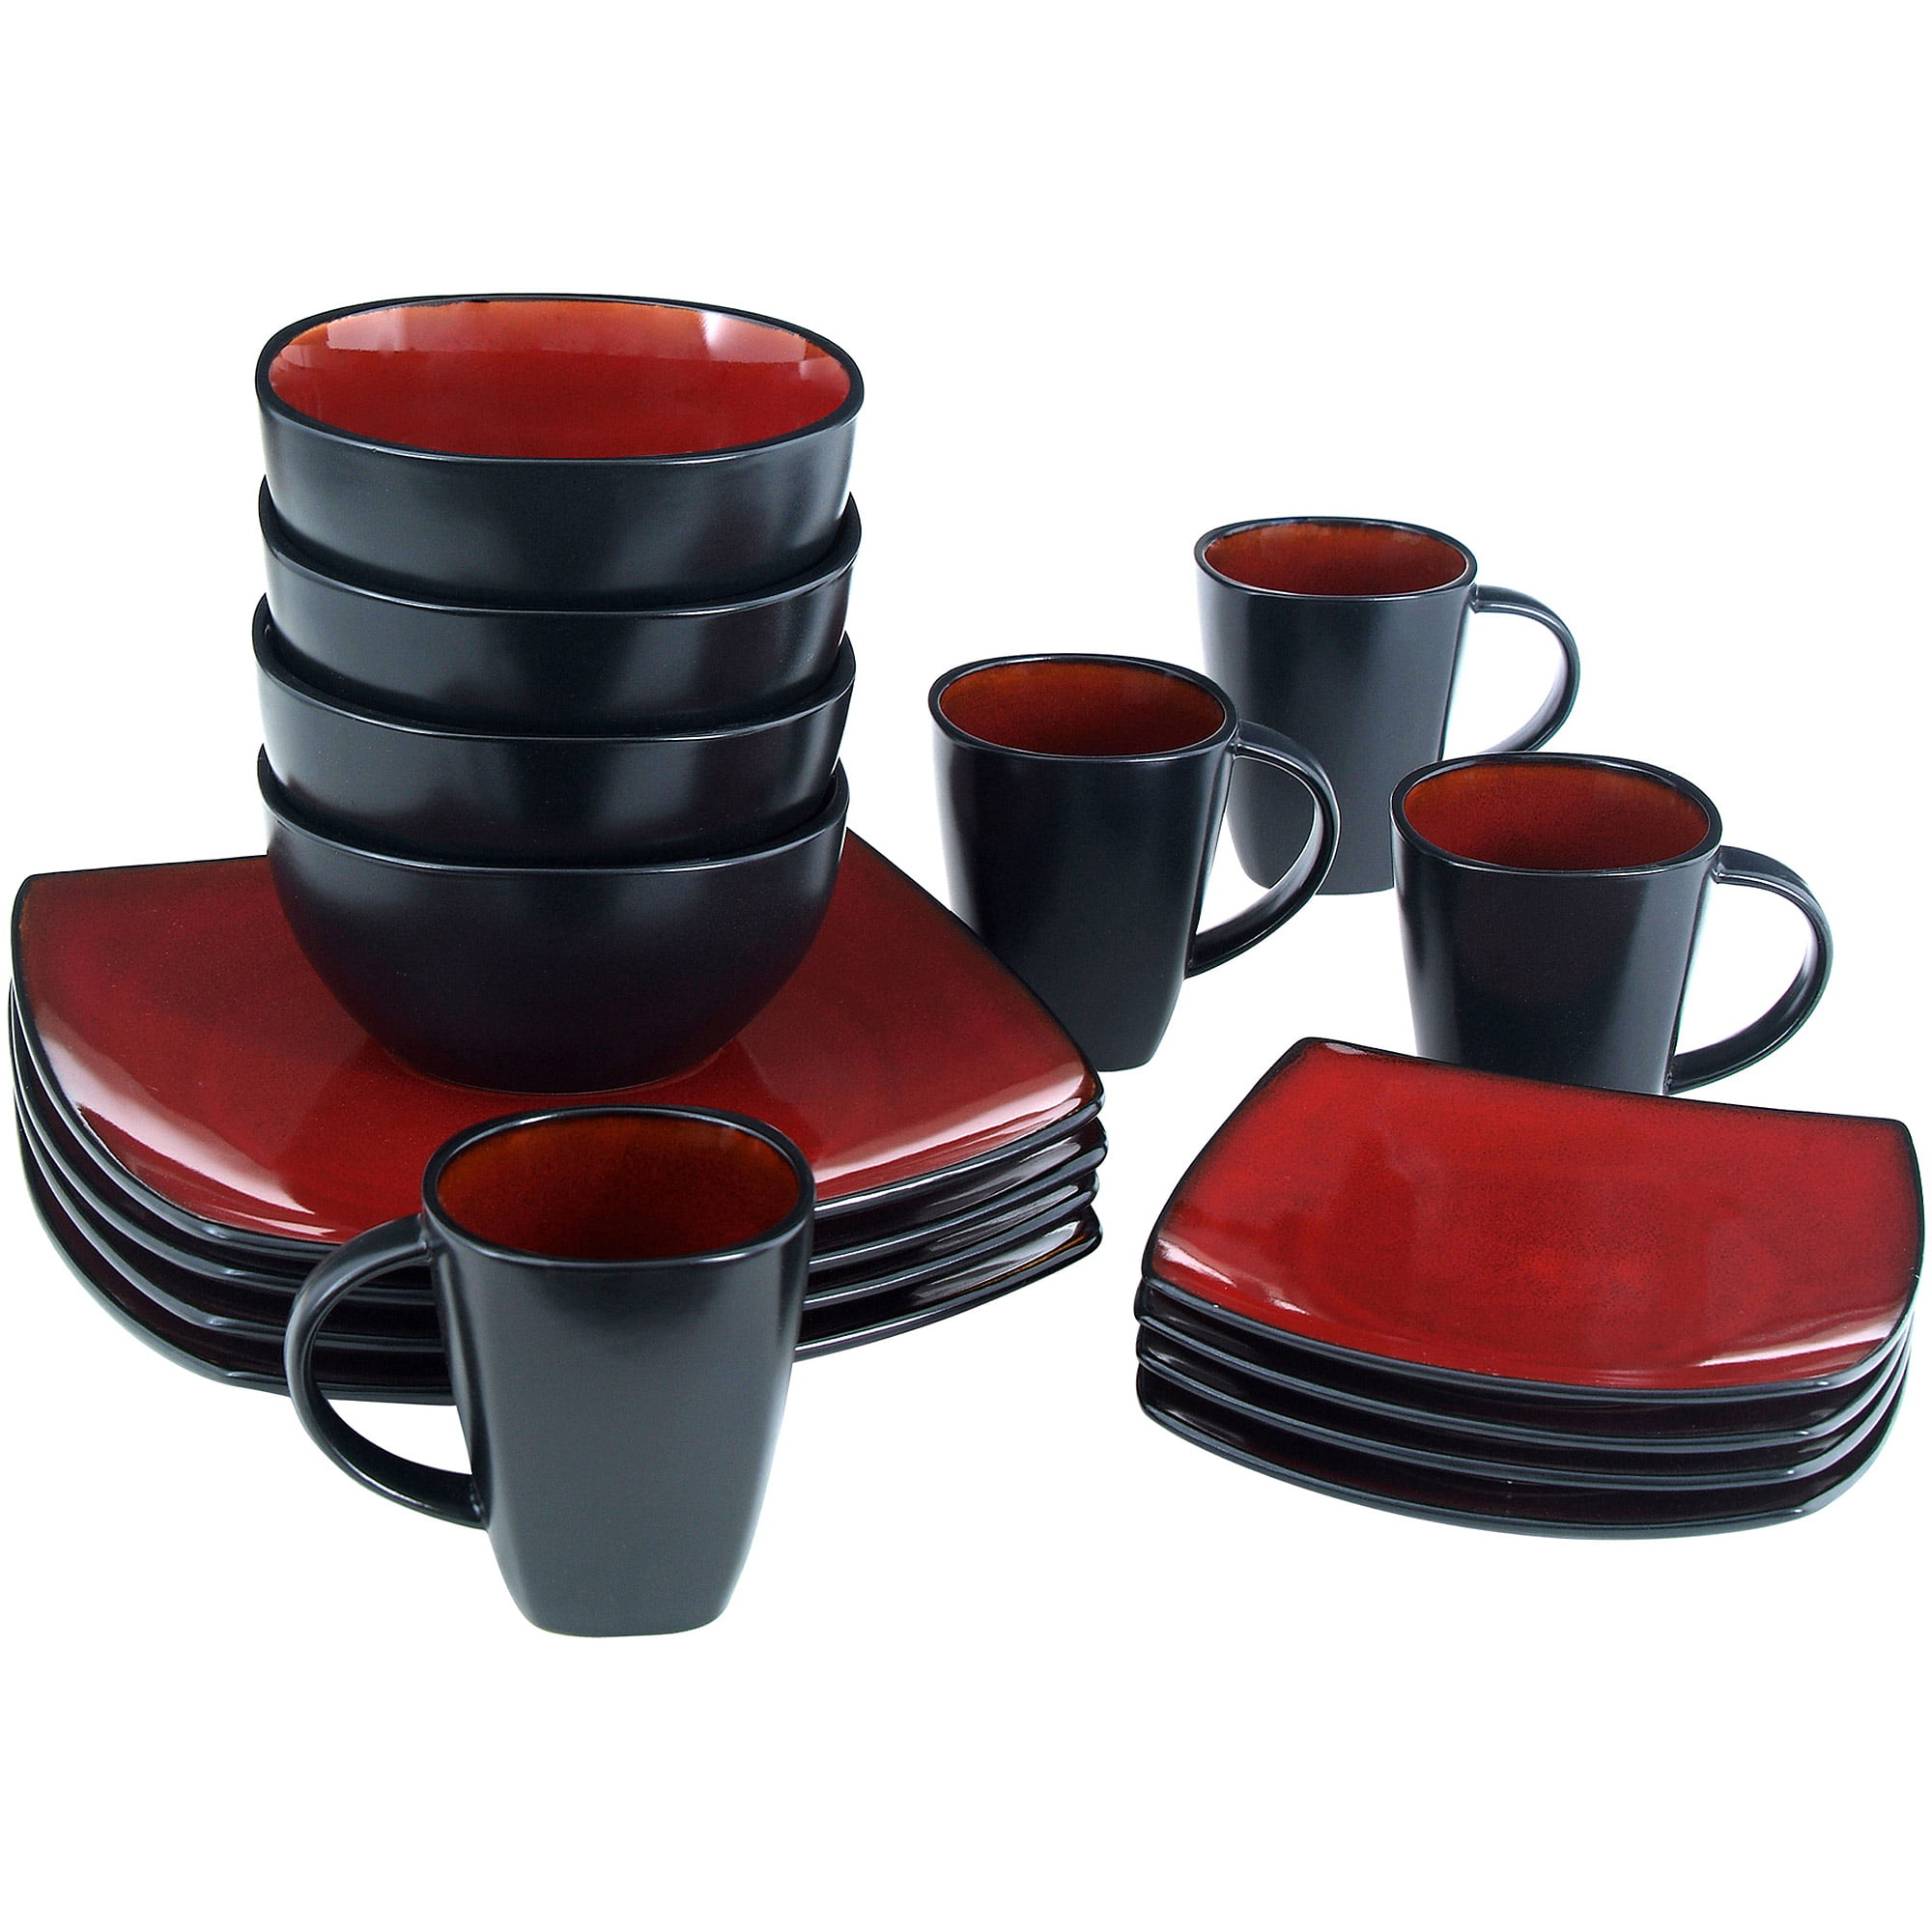 sc 1 st  Walmart & Better Homes \u0026 Gardens 16-Piece Dinnerware Set Tuscan Red - Walmart.com